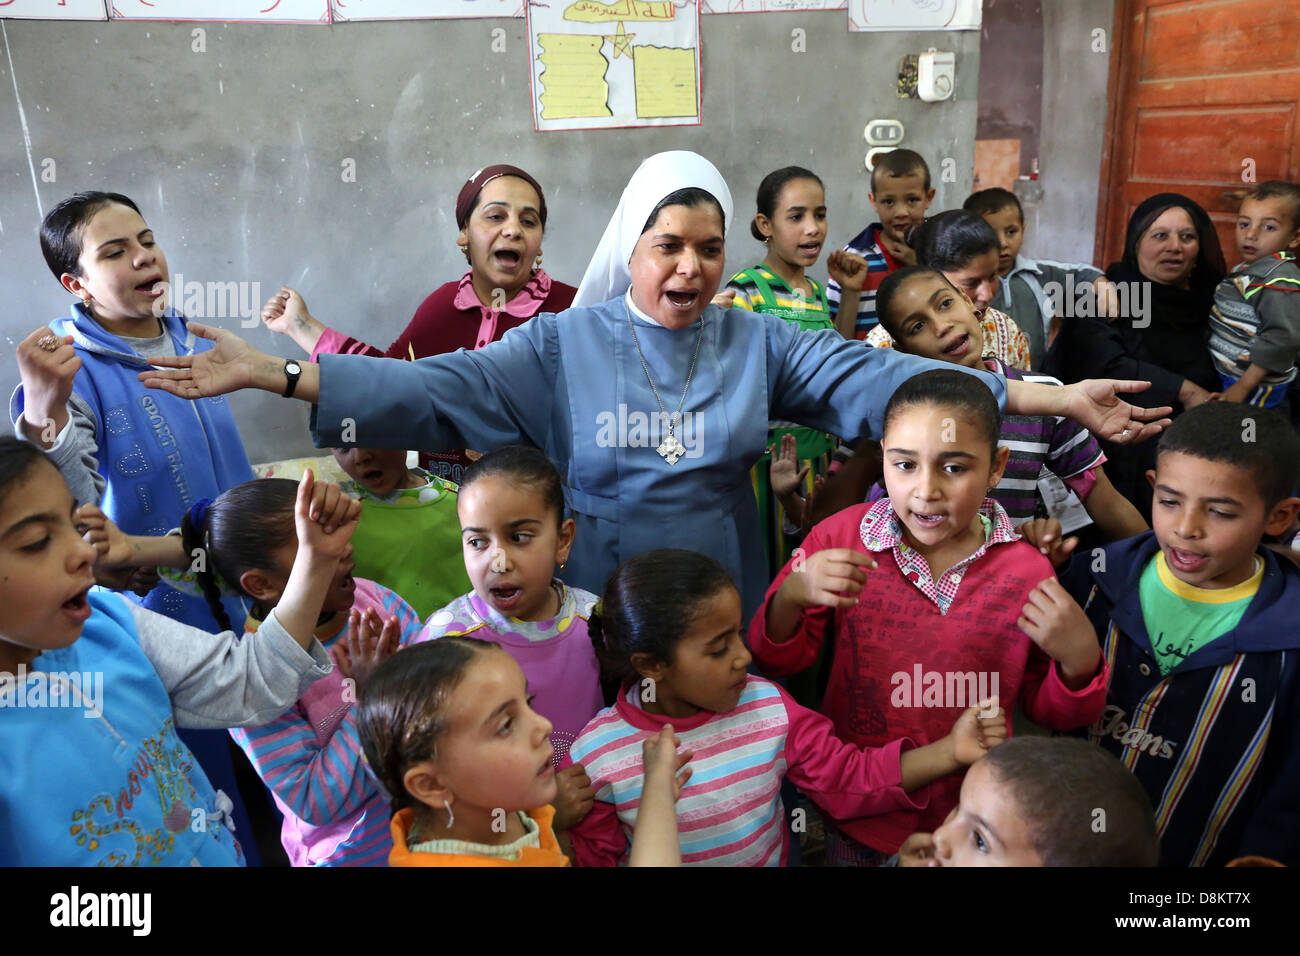 Egypt, christian religious education by a catholic coptic Nun (Sister) in a private household in Upper Egypt - Stock Image